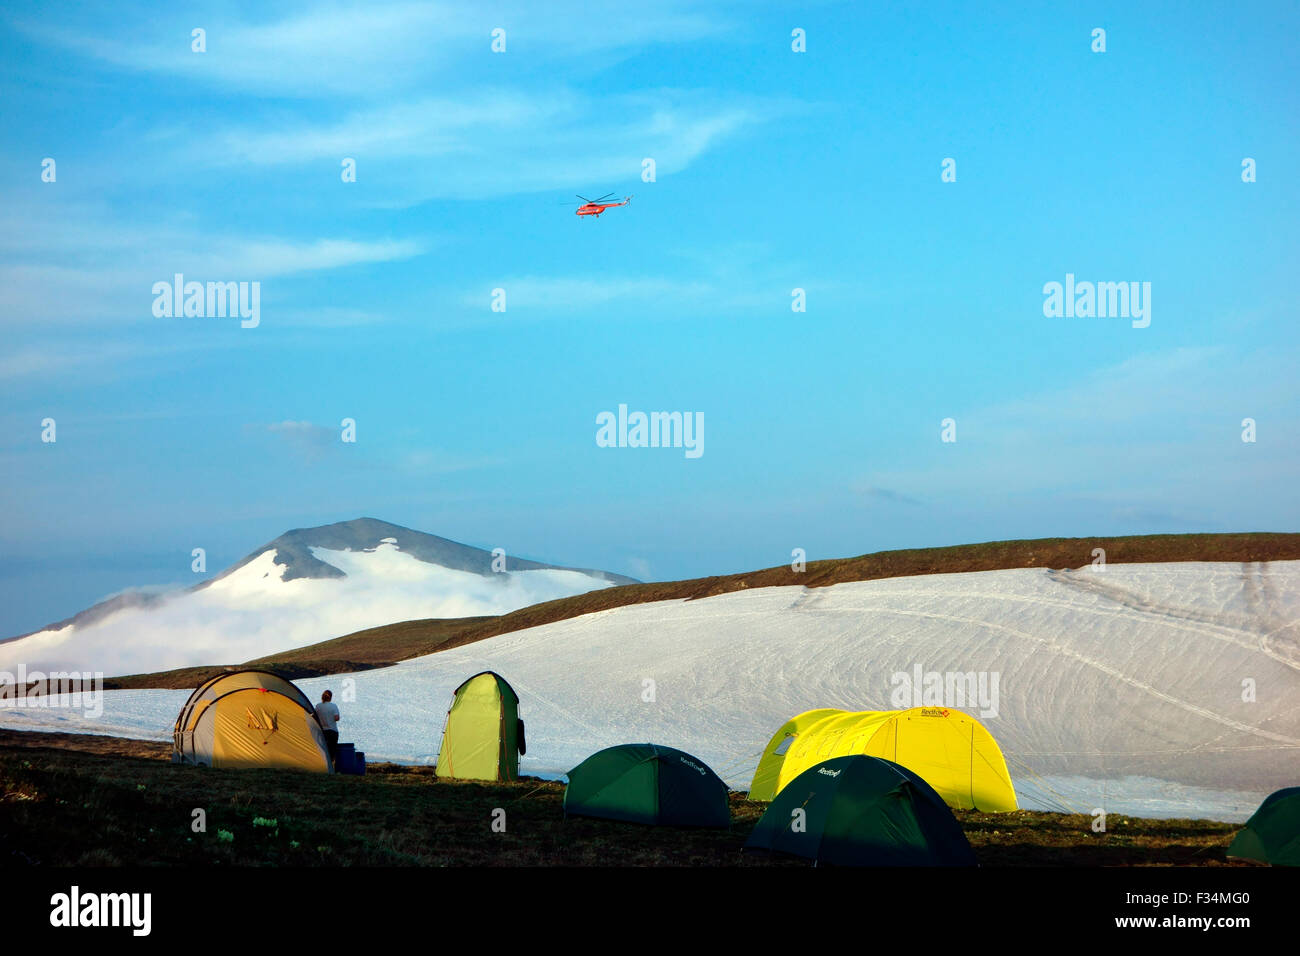 Helicopter flying over the tourists tents, Gorely volcano base camp, Kamchatka Peninsula, Russia - Stock Image